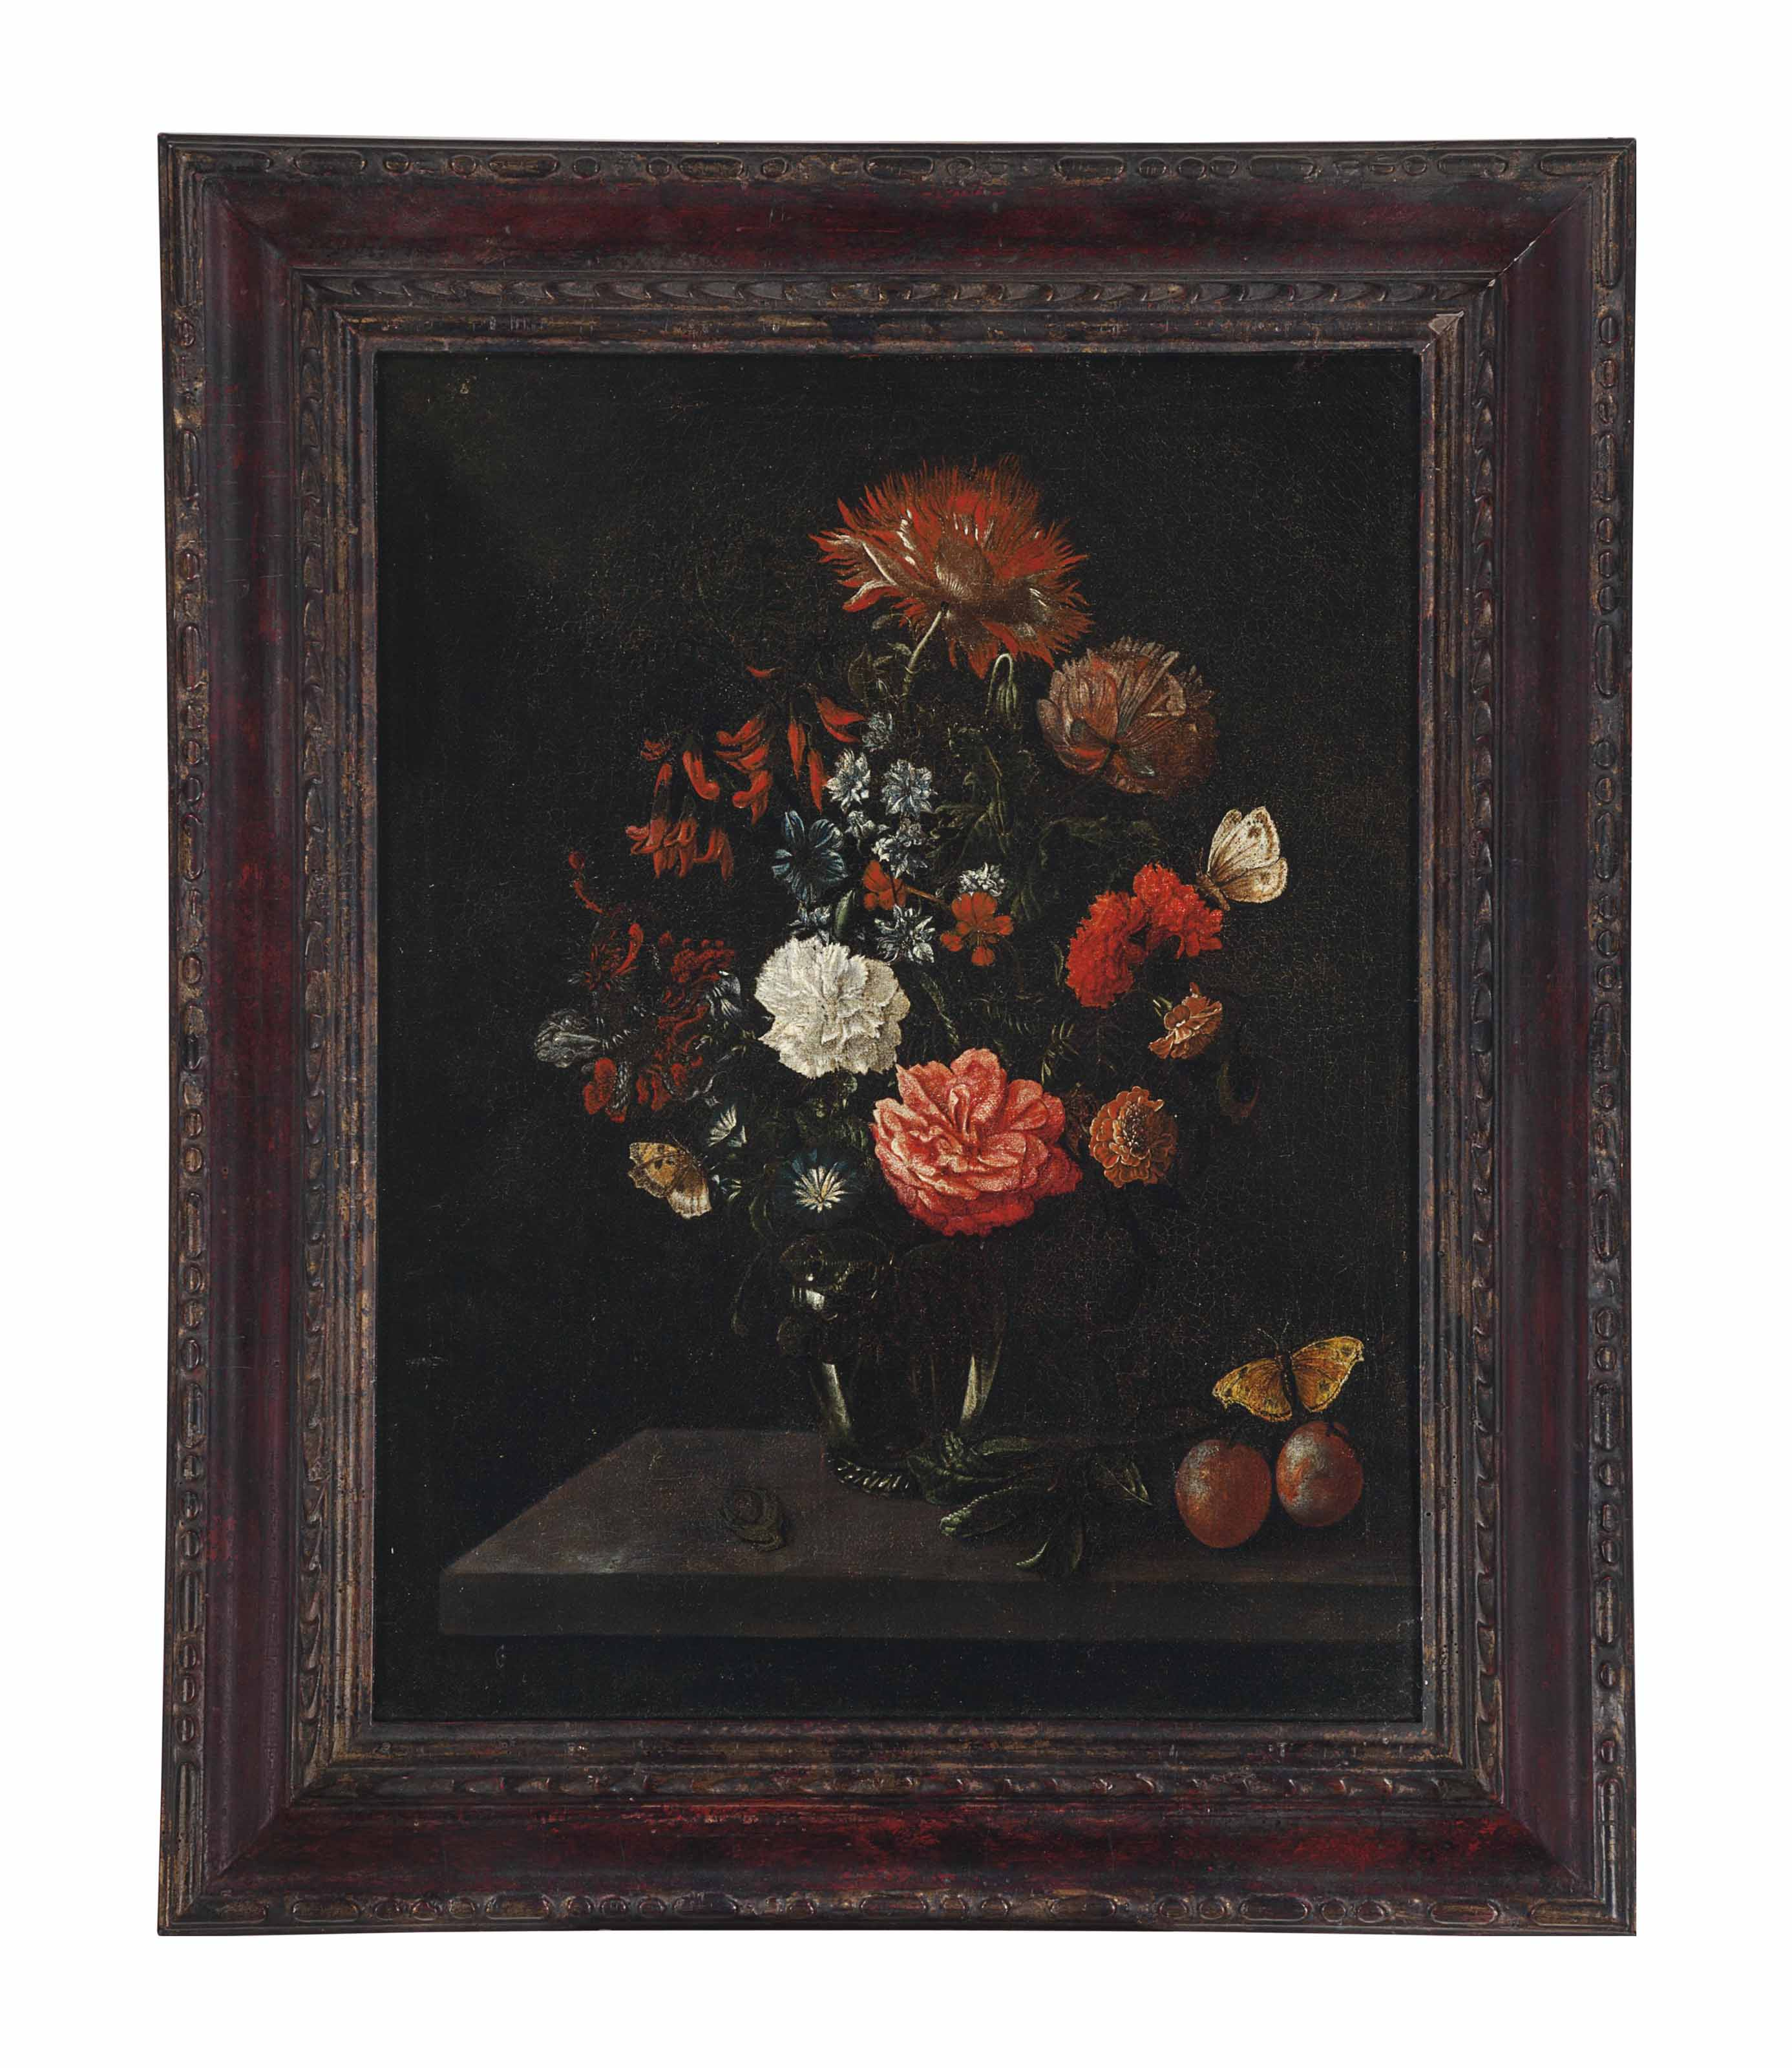 Carnations, roses and other flowers in a glass vase with Italian plums, moths and a lizard on a stone ledge